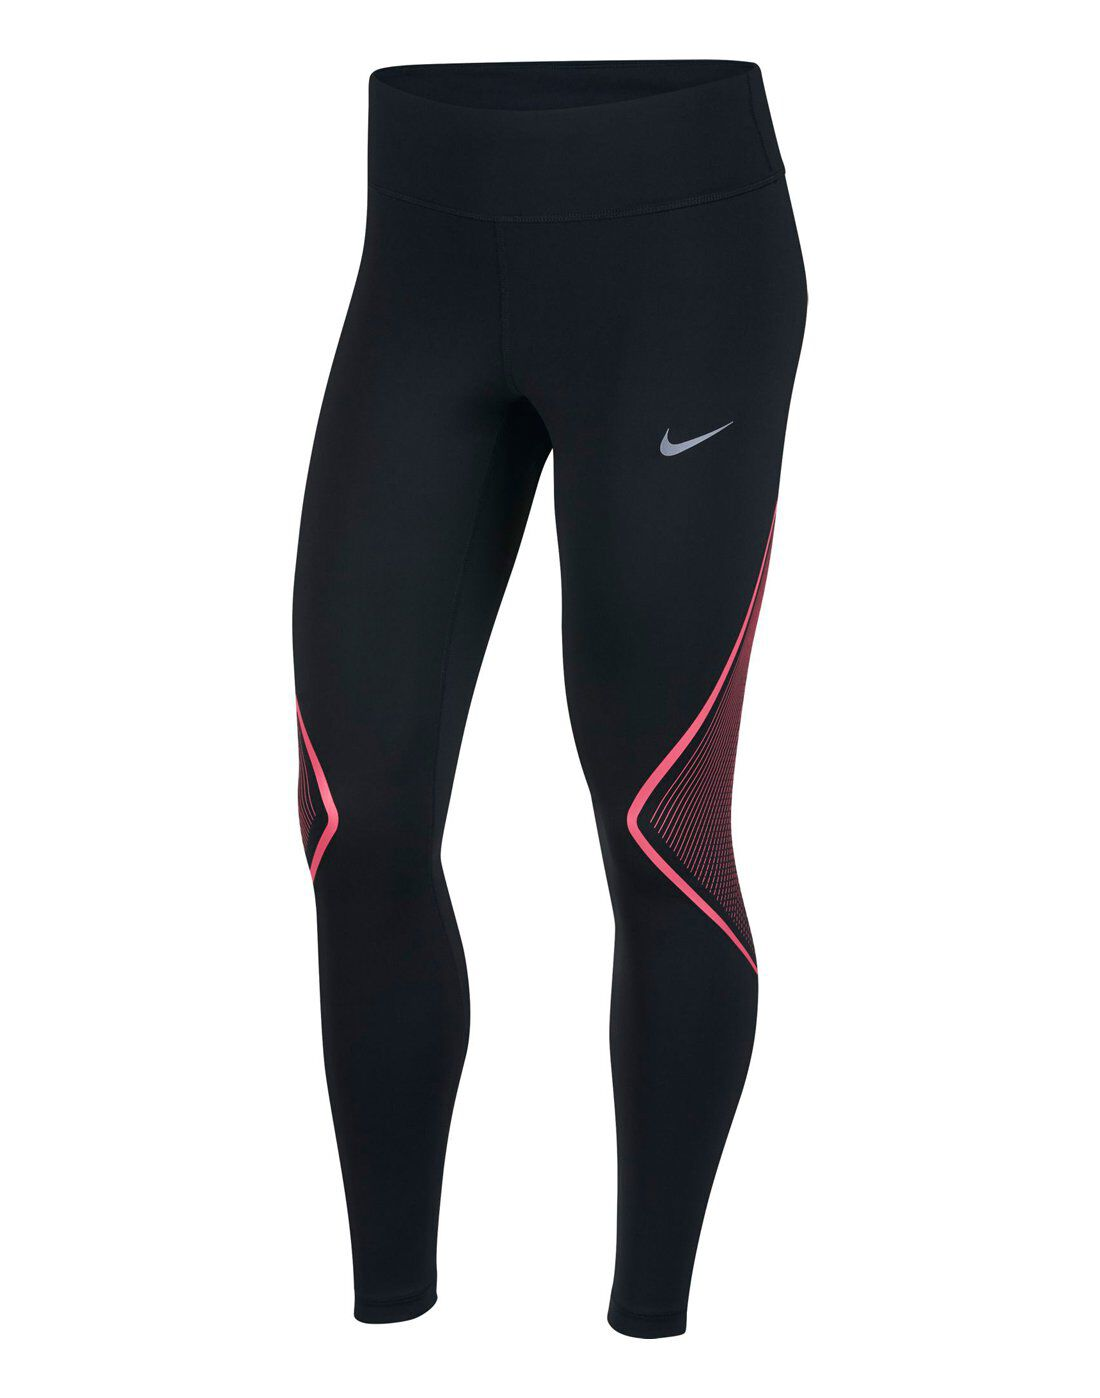 Womens Fast Power Tight